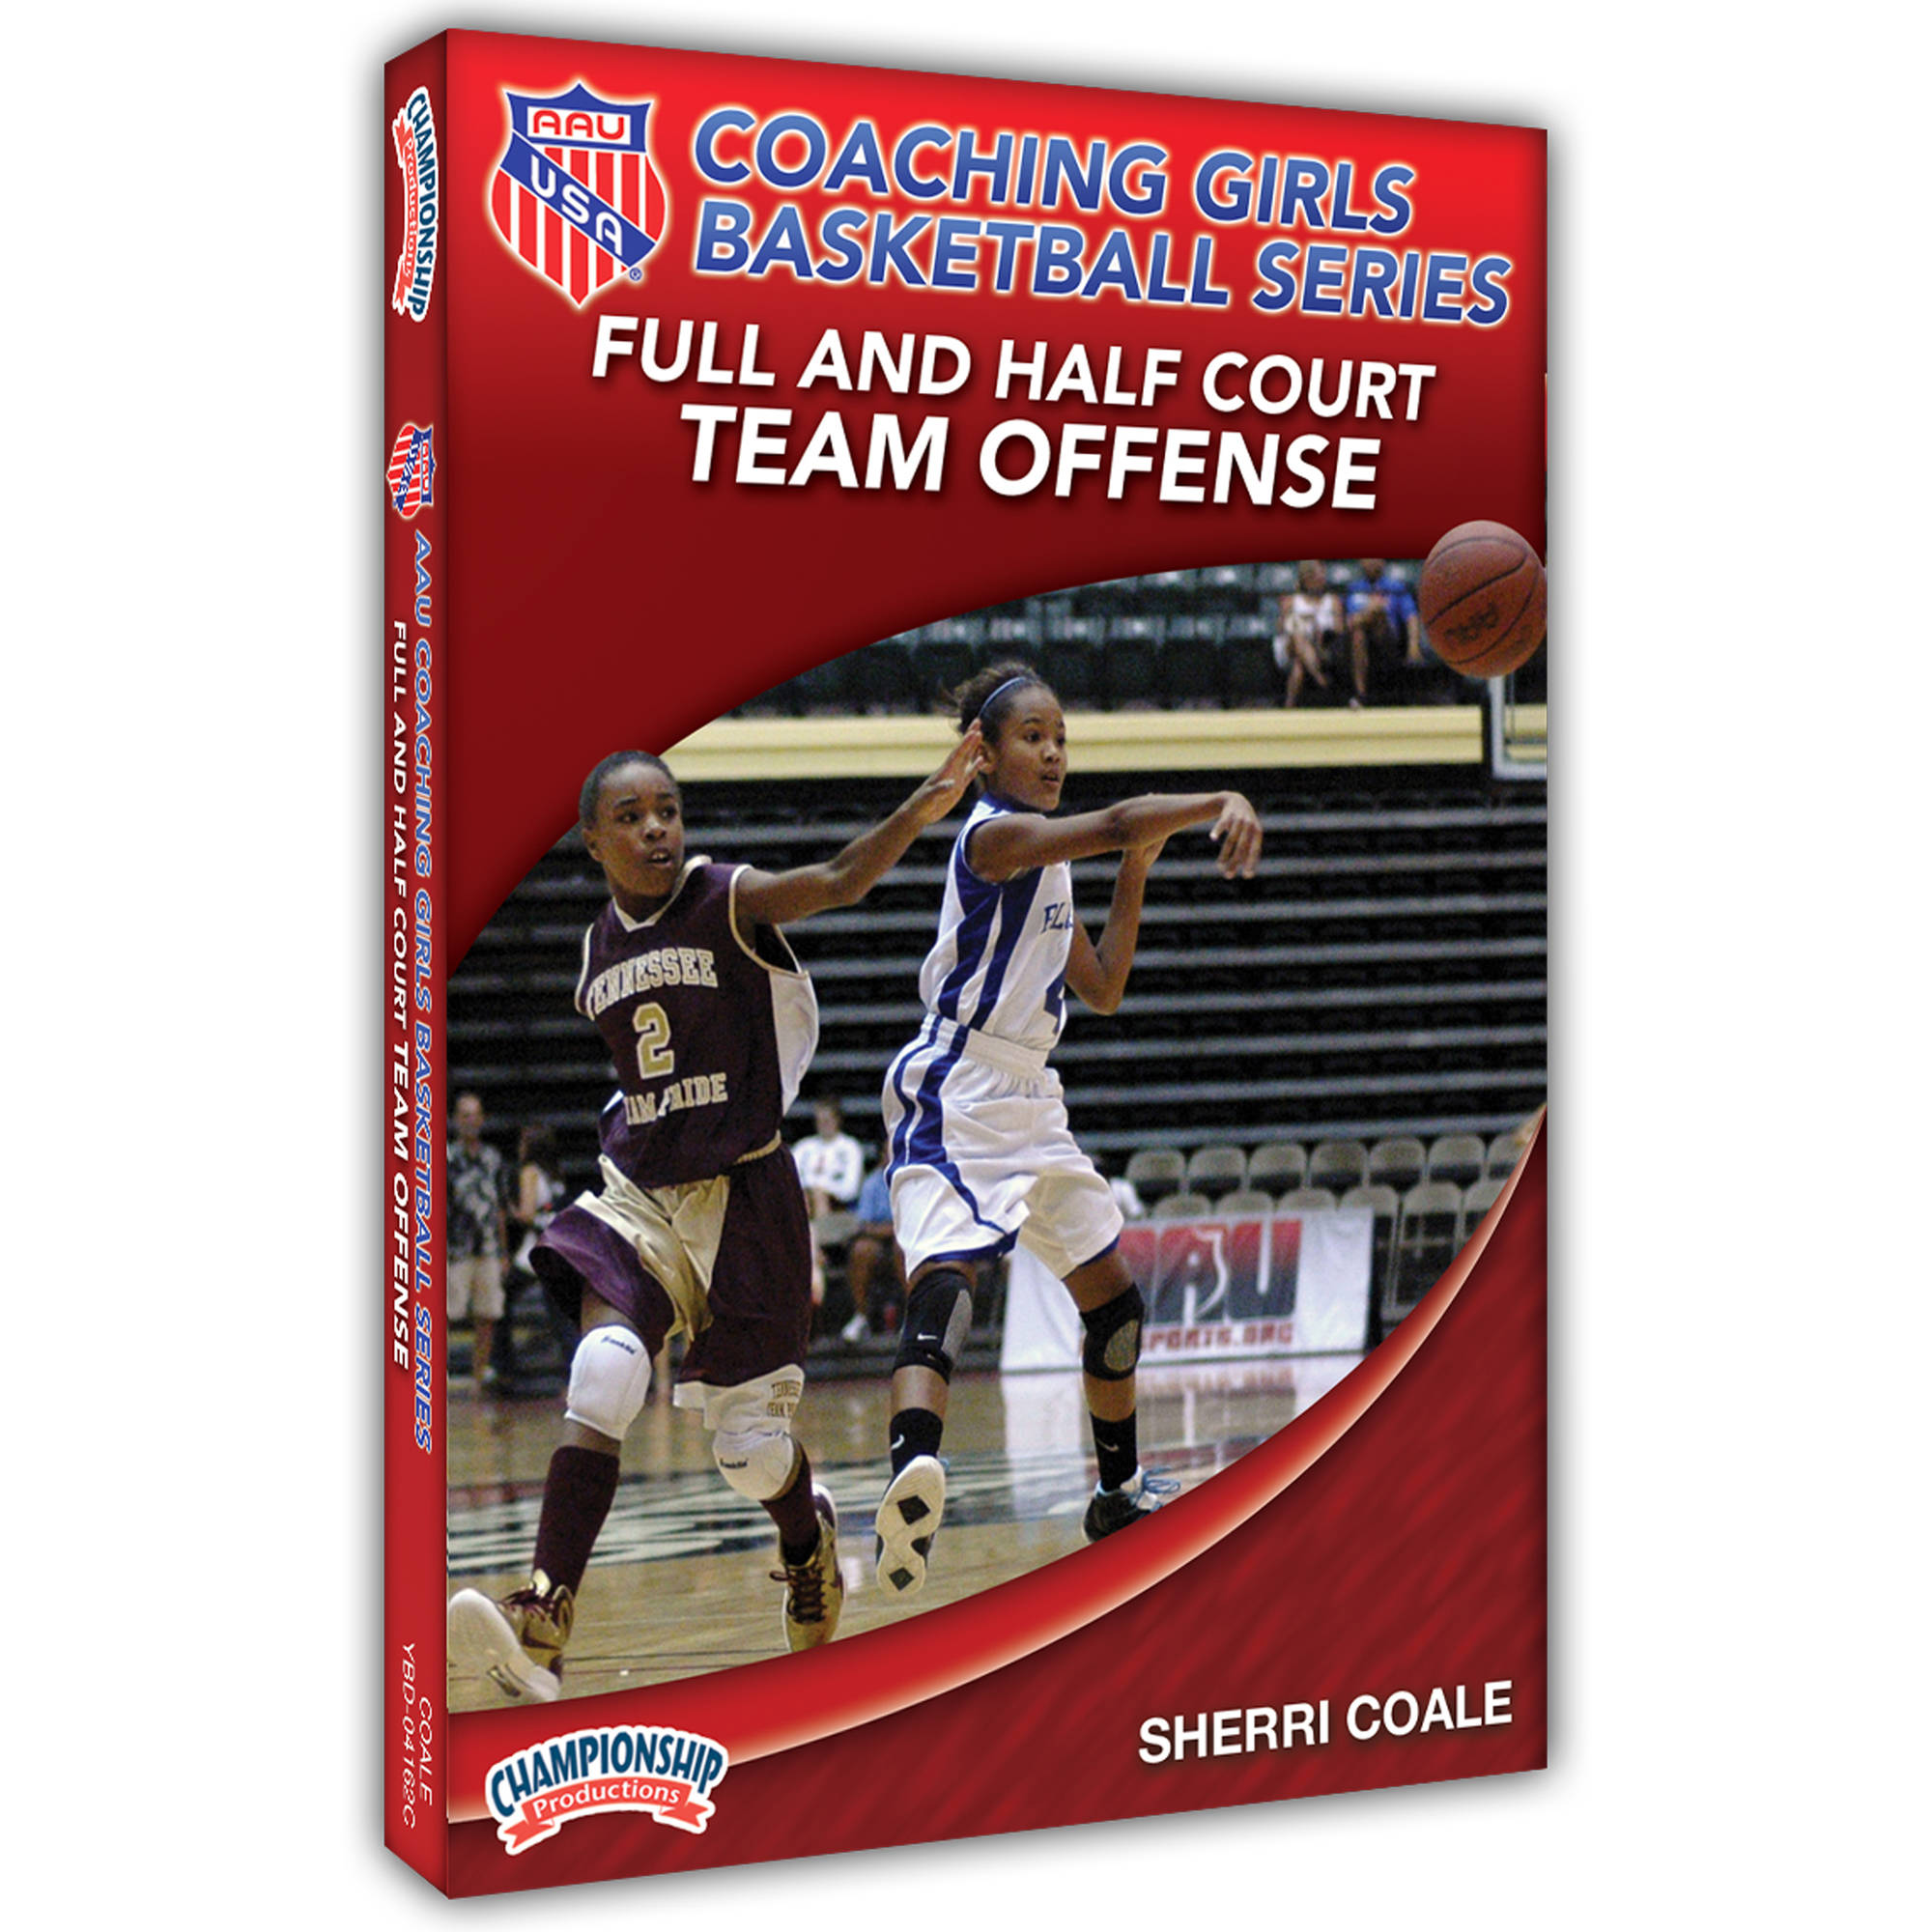 AAU Coaching Girls Basketball Series: Full and Half Court Team Offense by Championship Productions